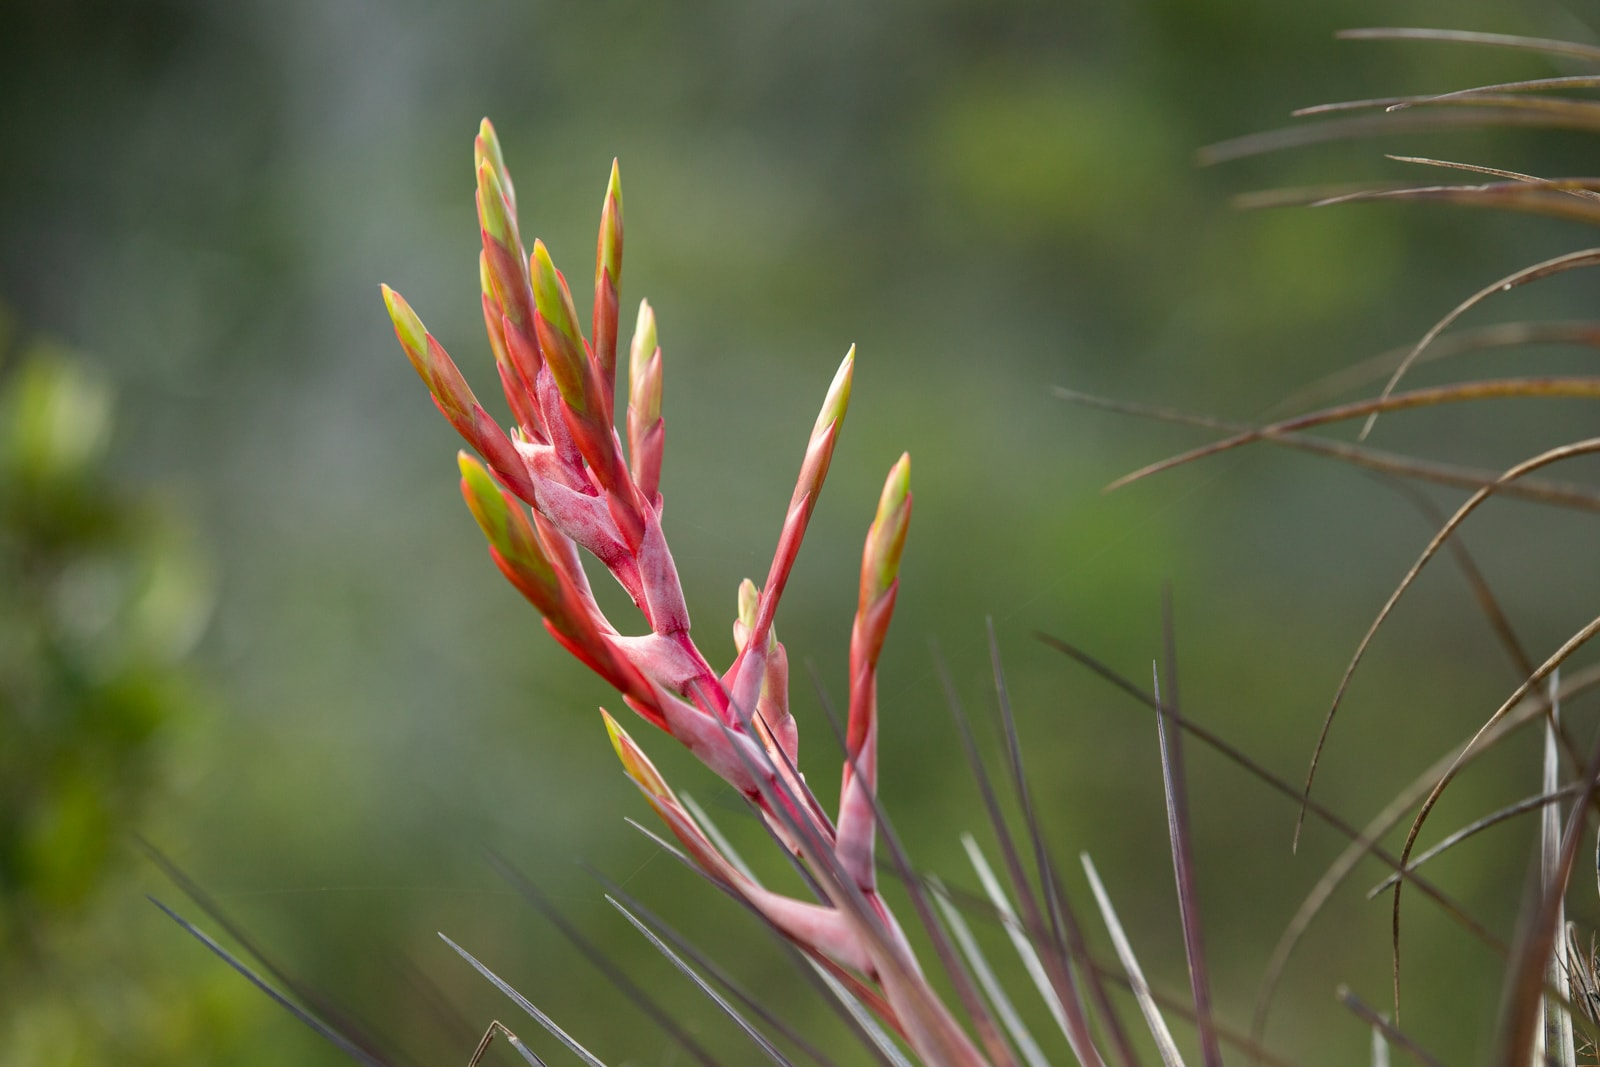 A wild Cardinal air plant (Tillandsia fasciculata) in the Everglades